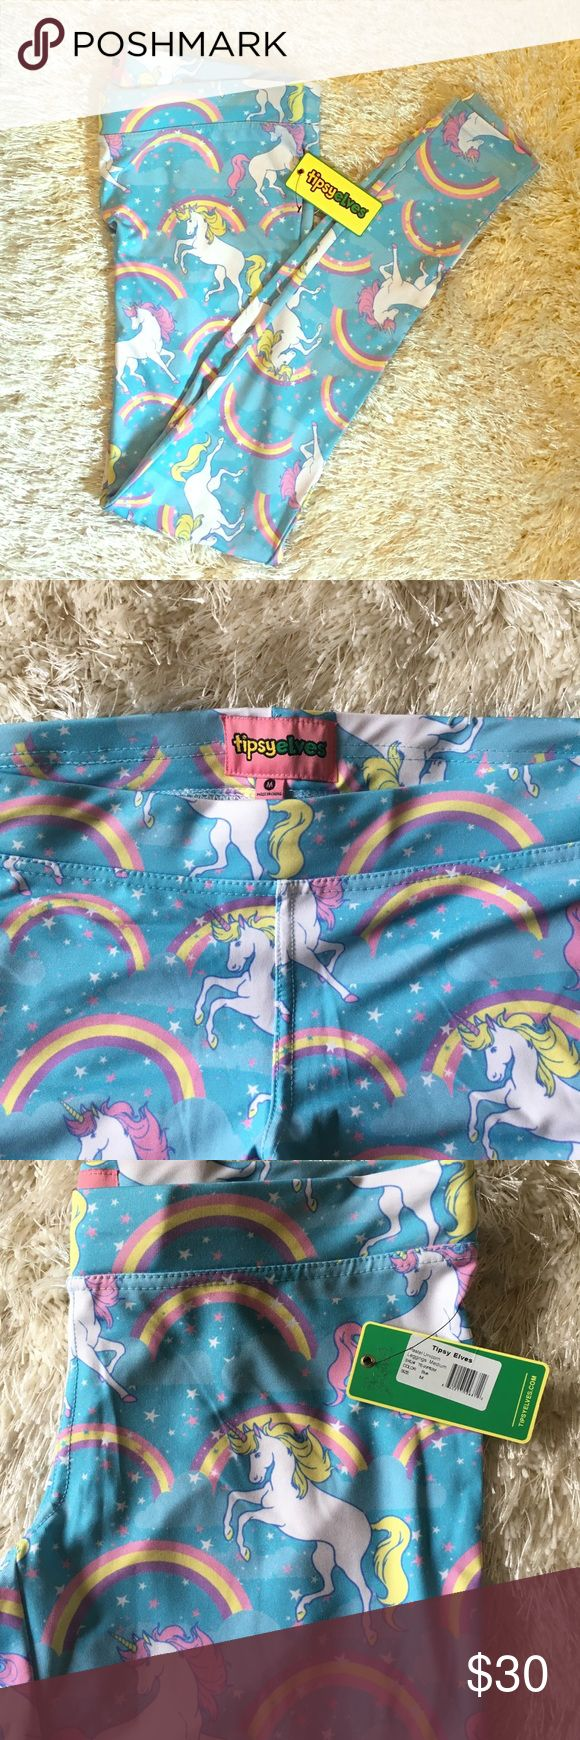 Tipsy Elves Rainbow Unicorn Medium Leggings Super cute 95% Polyester, 5% Spandex Rainbow and Unicorn Leggings Tipsy Elves Pants Leggings